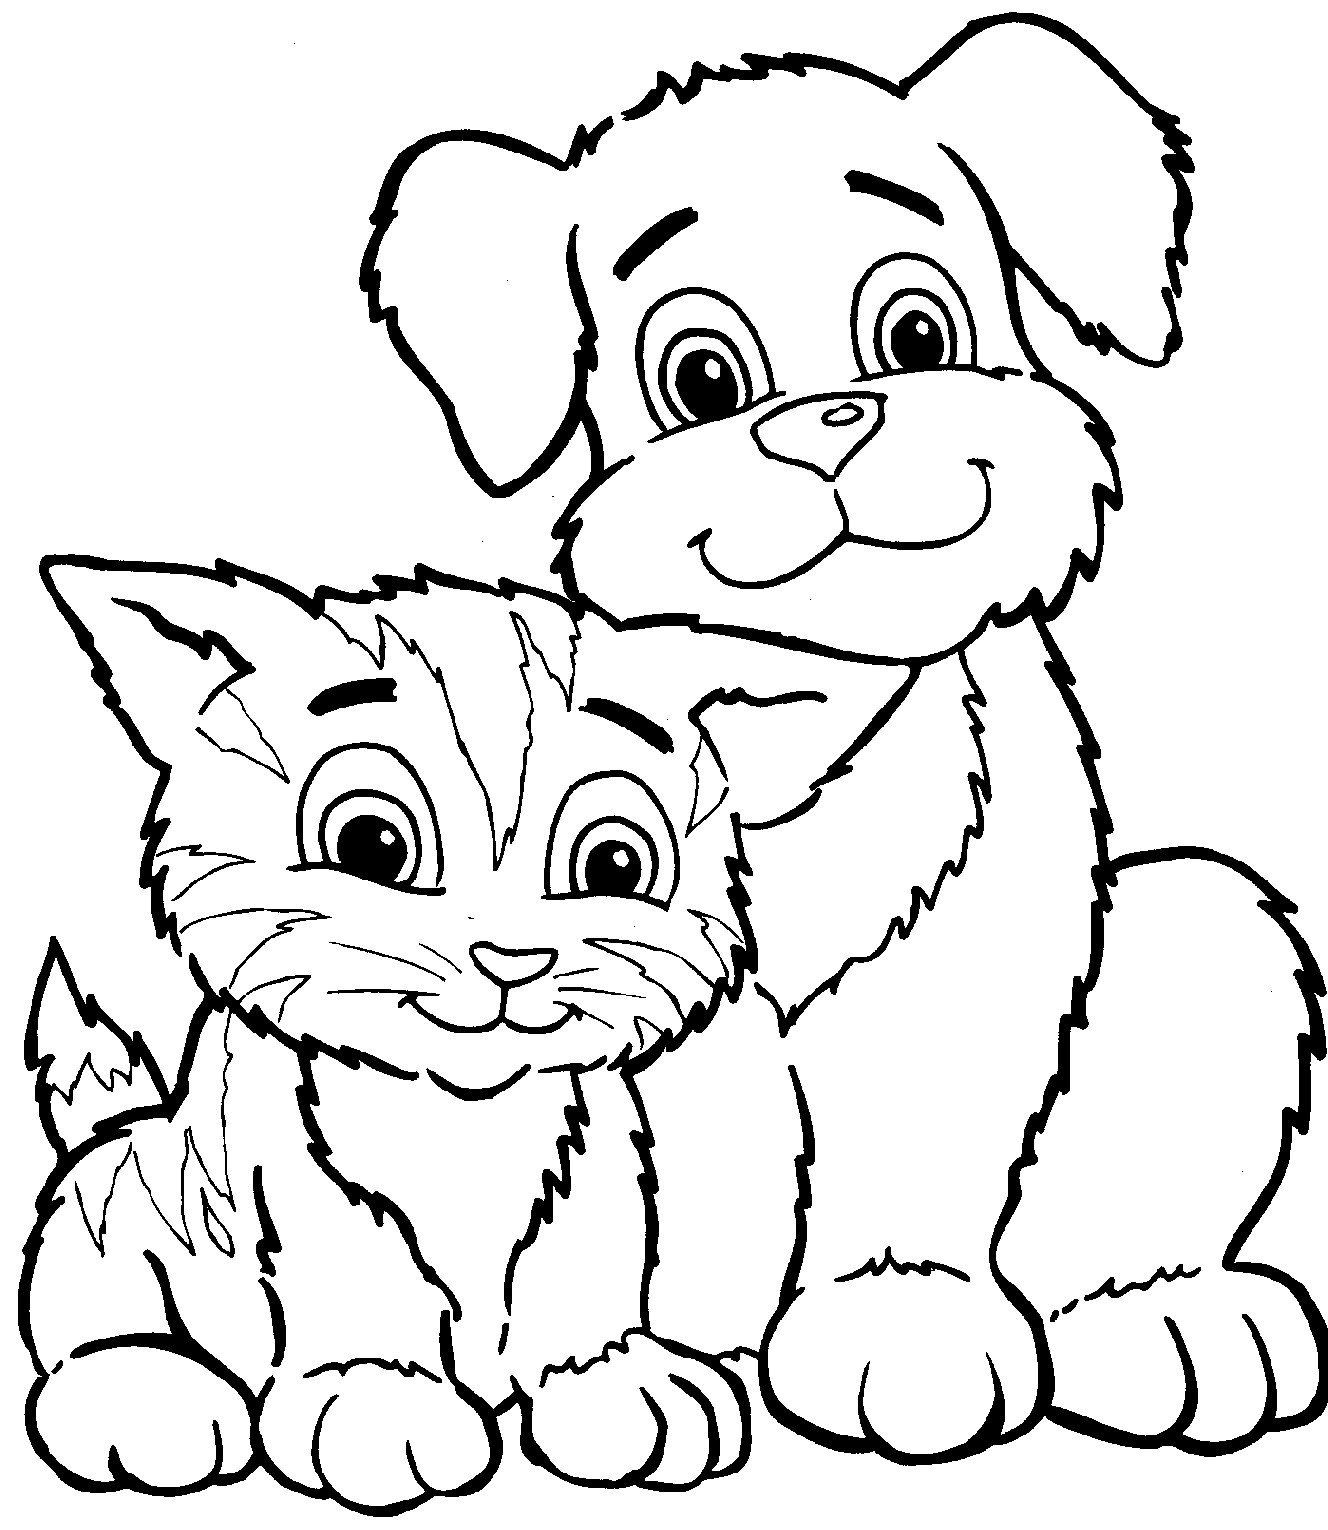 Cat And Dog Coloring Pages Awesome Coloring Book 41 Extraordinary Dog Colouring In Puppy Dog Puppy Coloring Pages Dog Coloring Page Cat Coloring Page